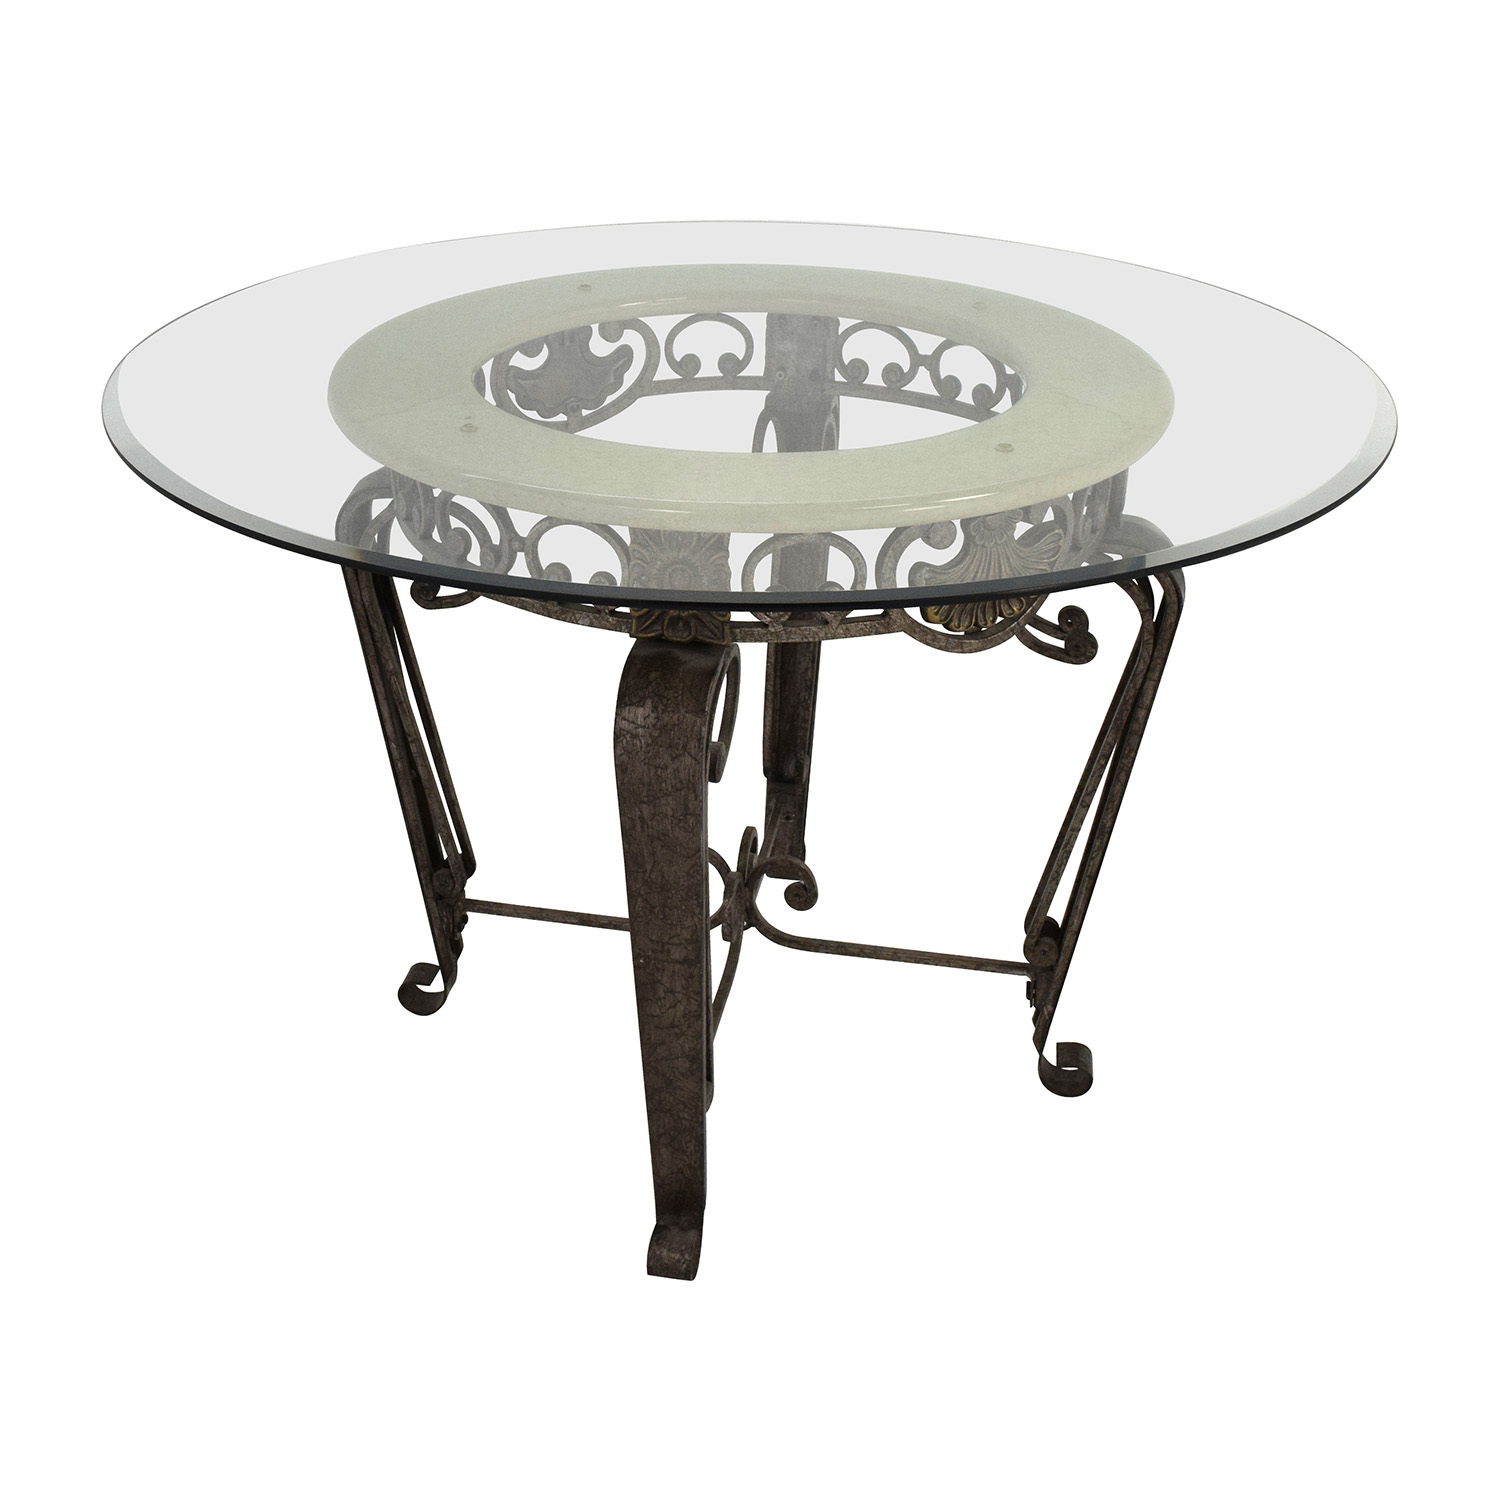 84 off scroll metal and glass top dining table tables for Glass top dining table sets